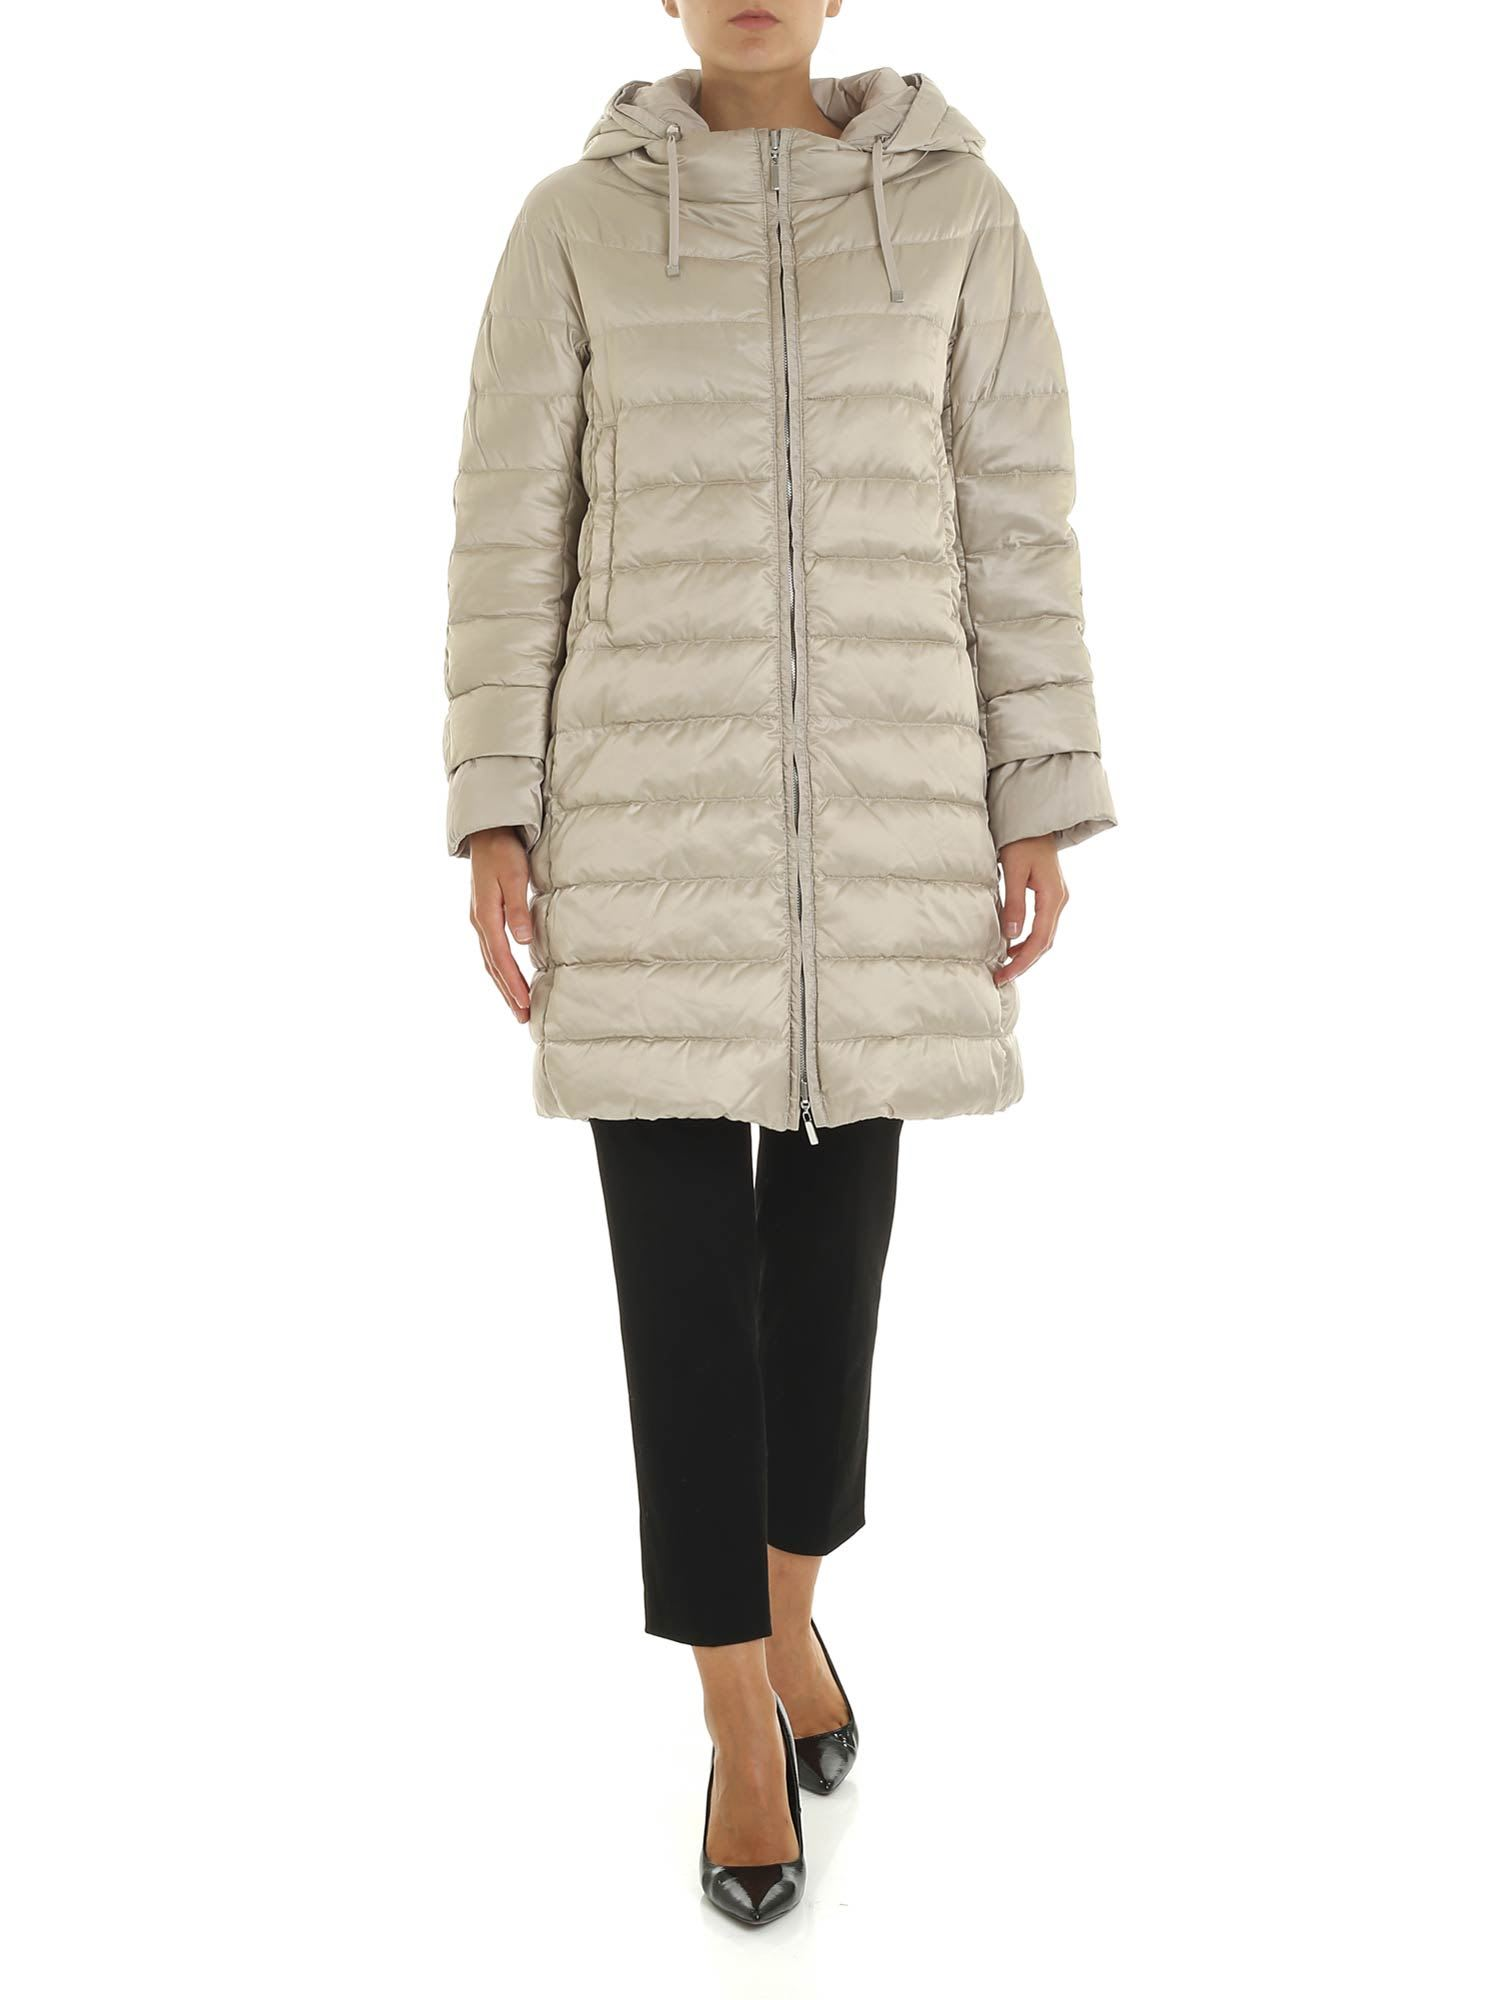 S Max Mara Here is The Cube Down Jacket